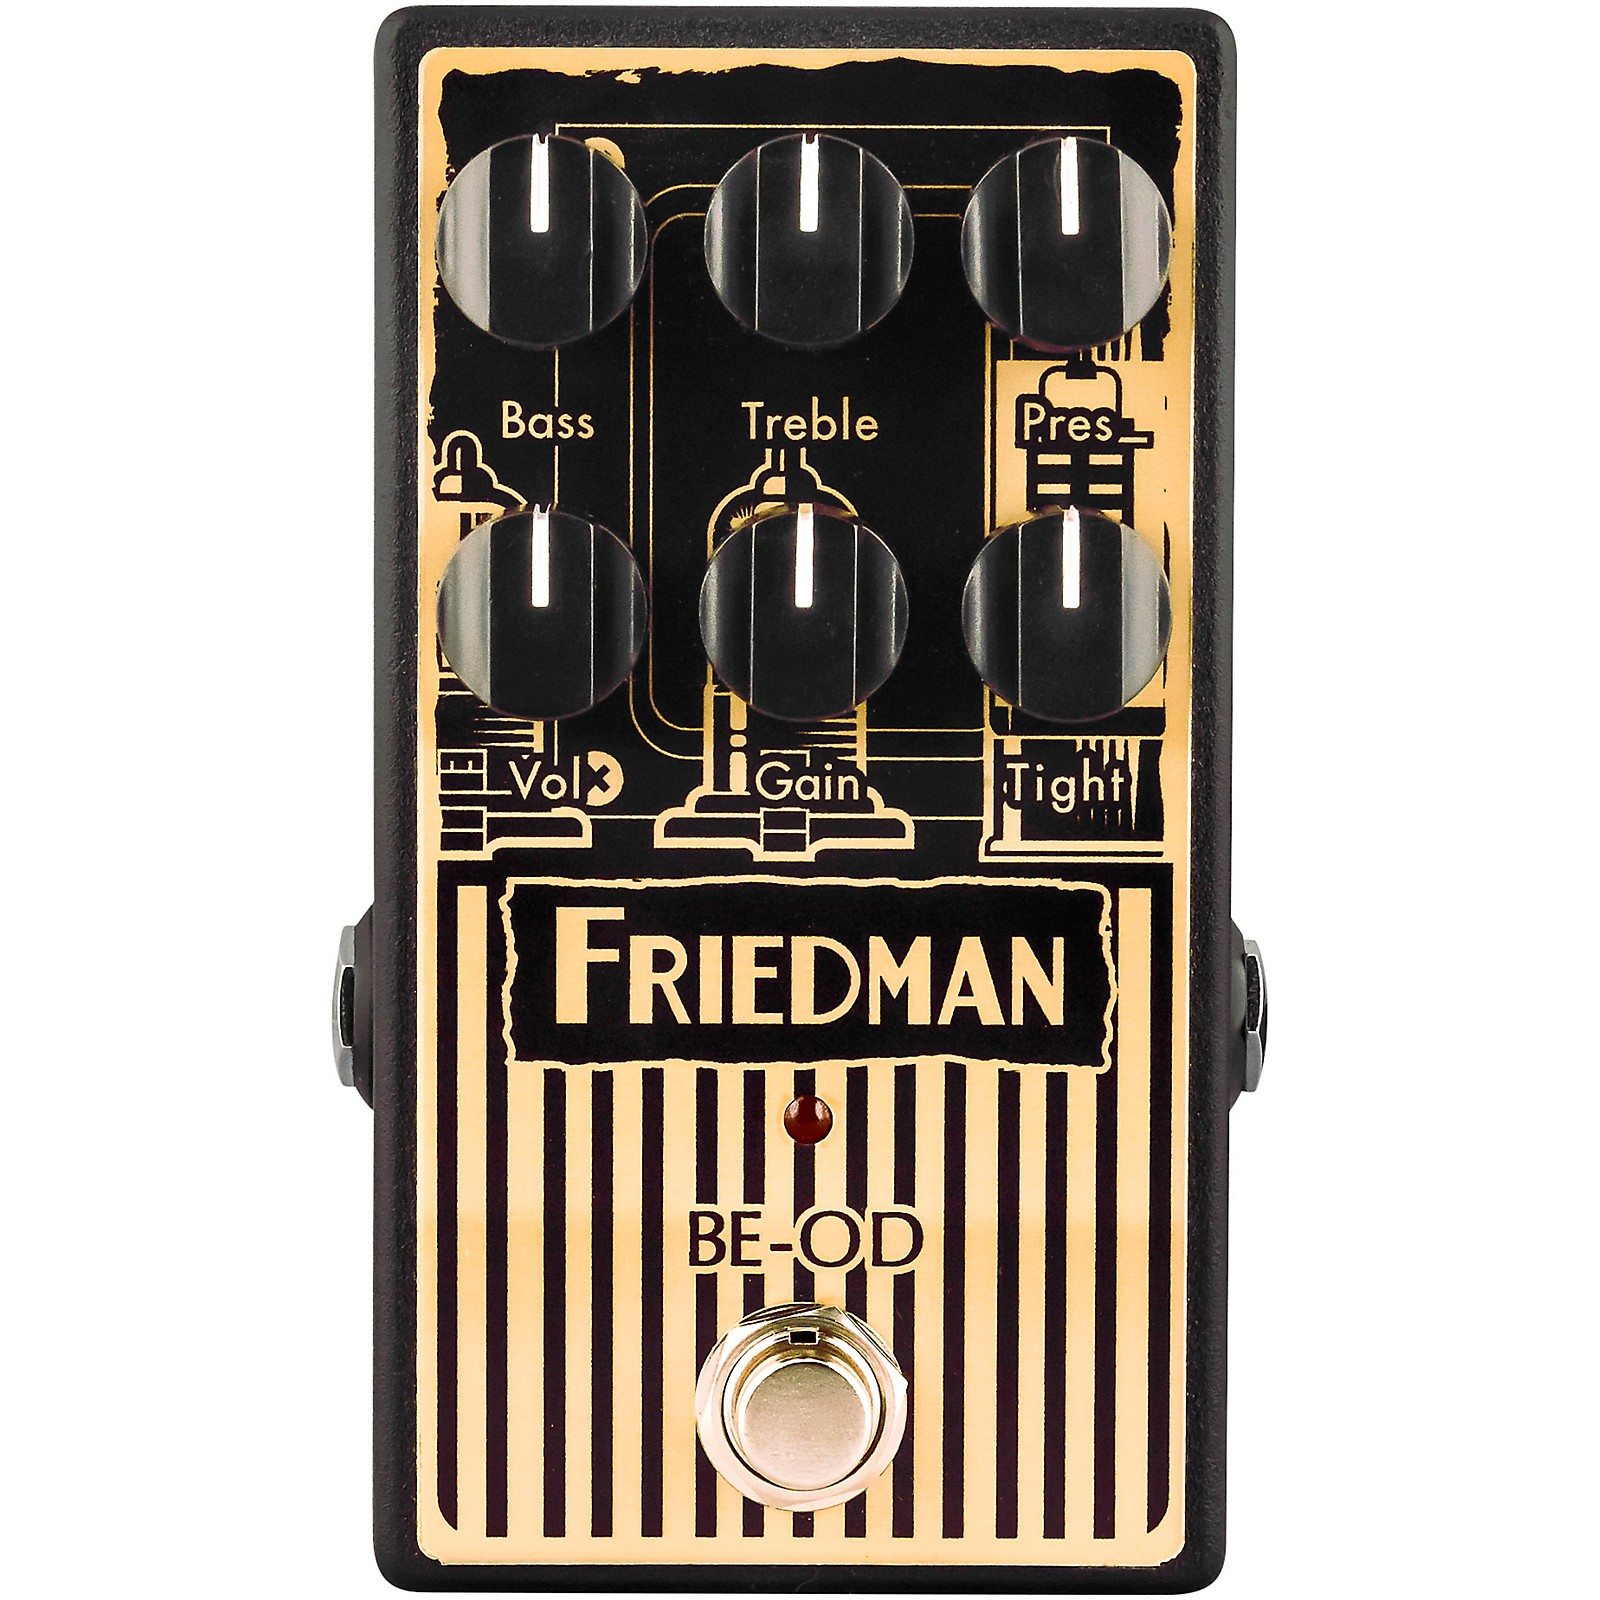 Friedman BE-OD Brown Eye Limited-Edition AmpArt Overdrive Effects Pedal